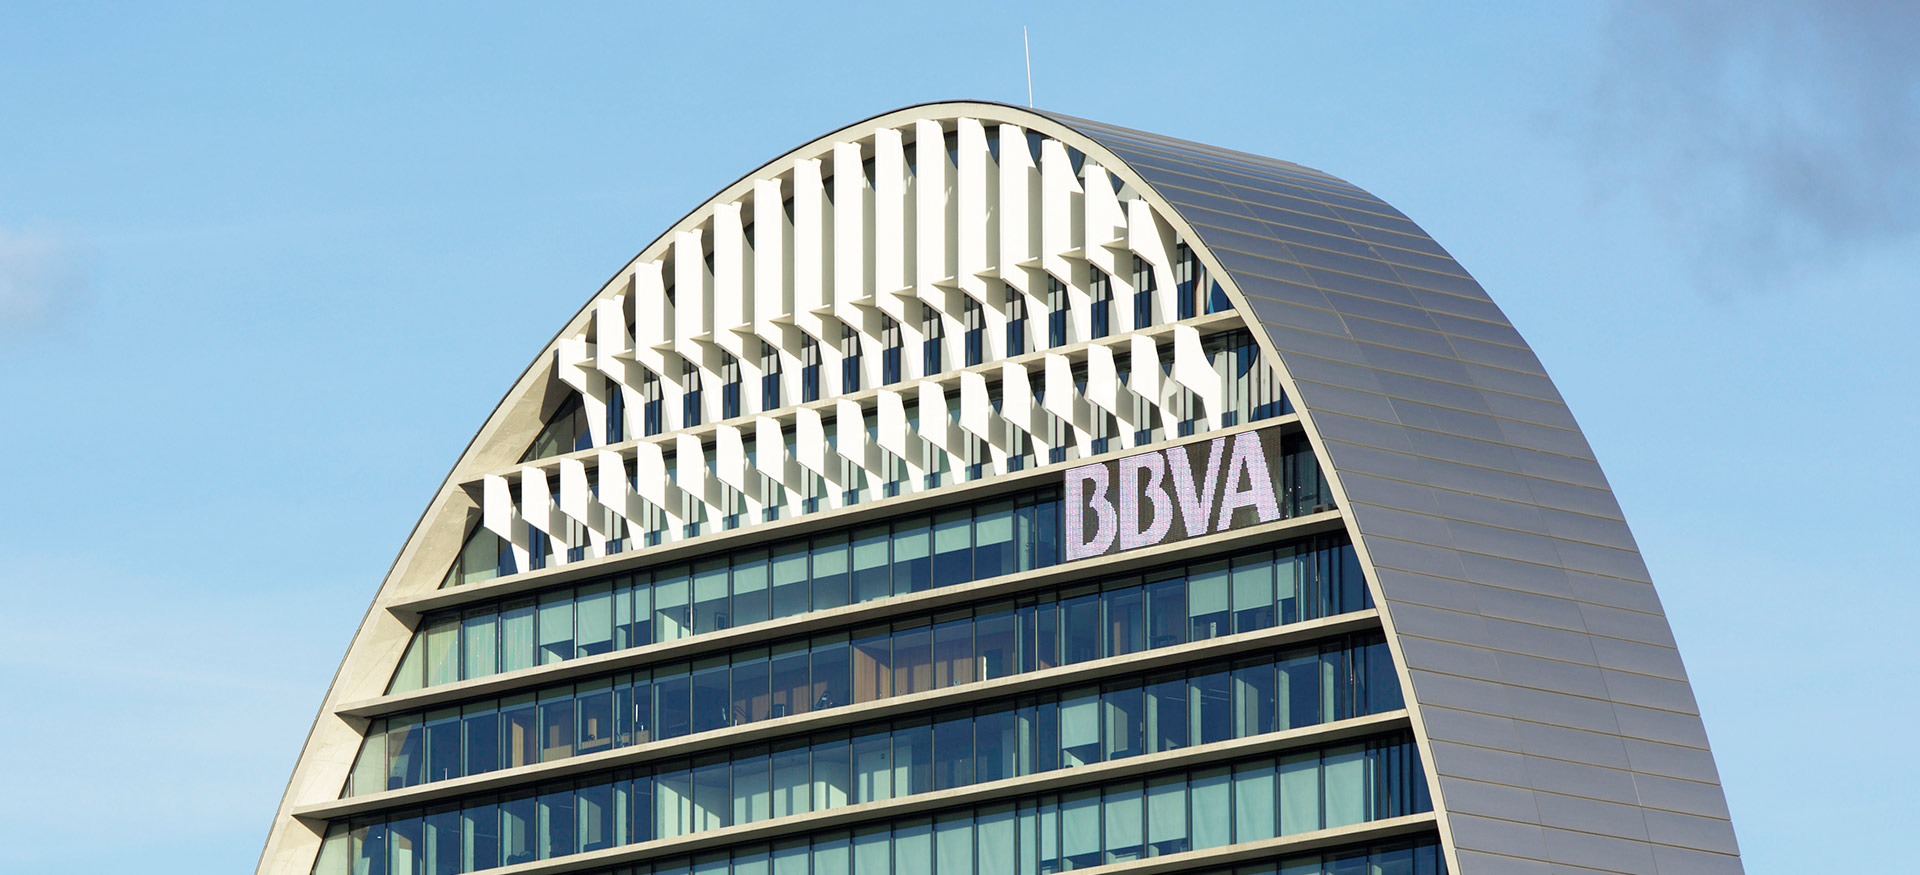 BBVA La Vela, Madrid, Spain